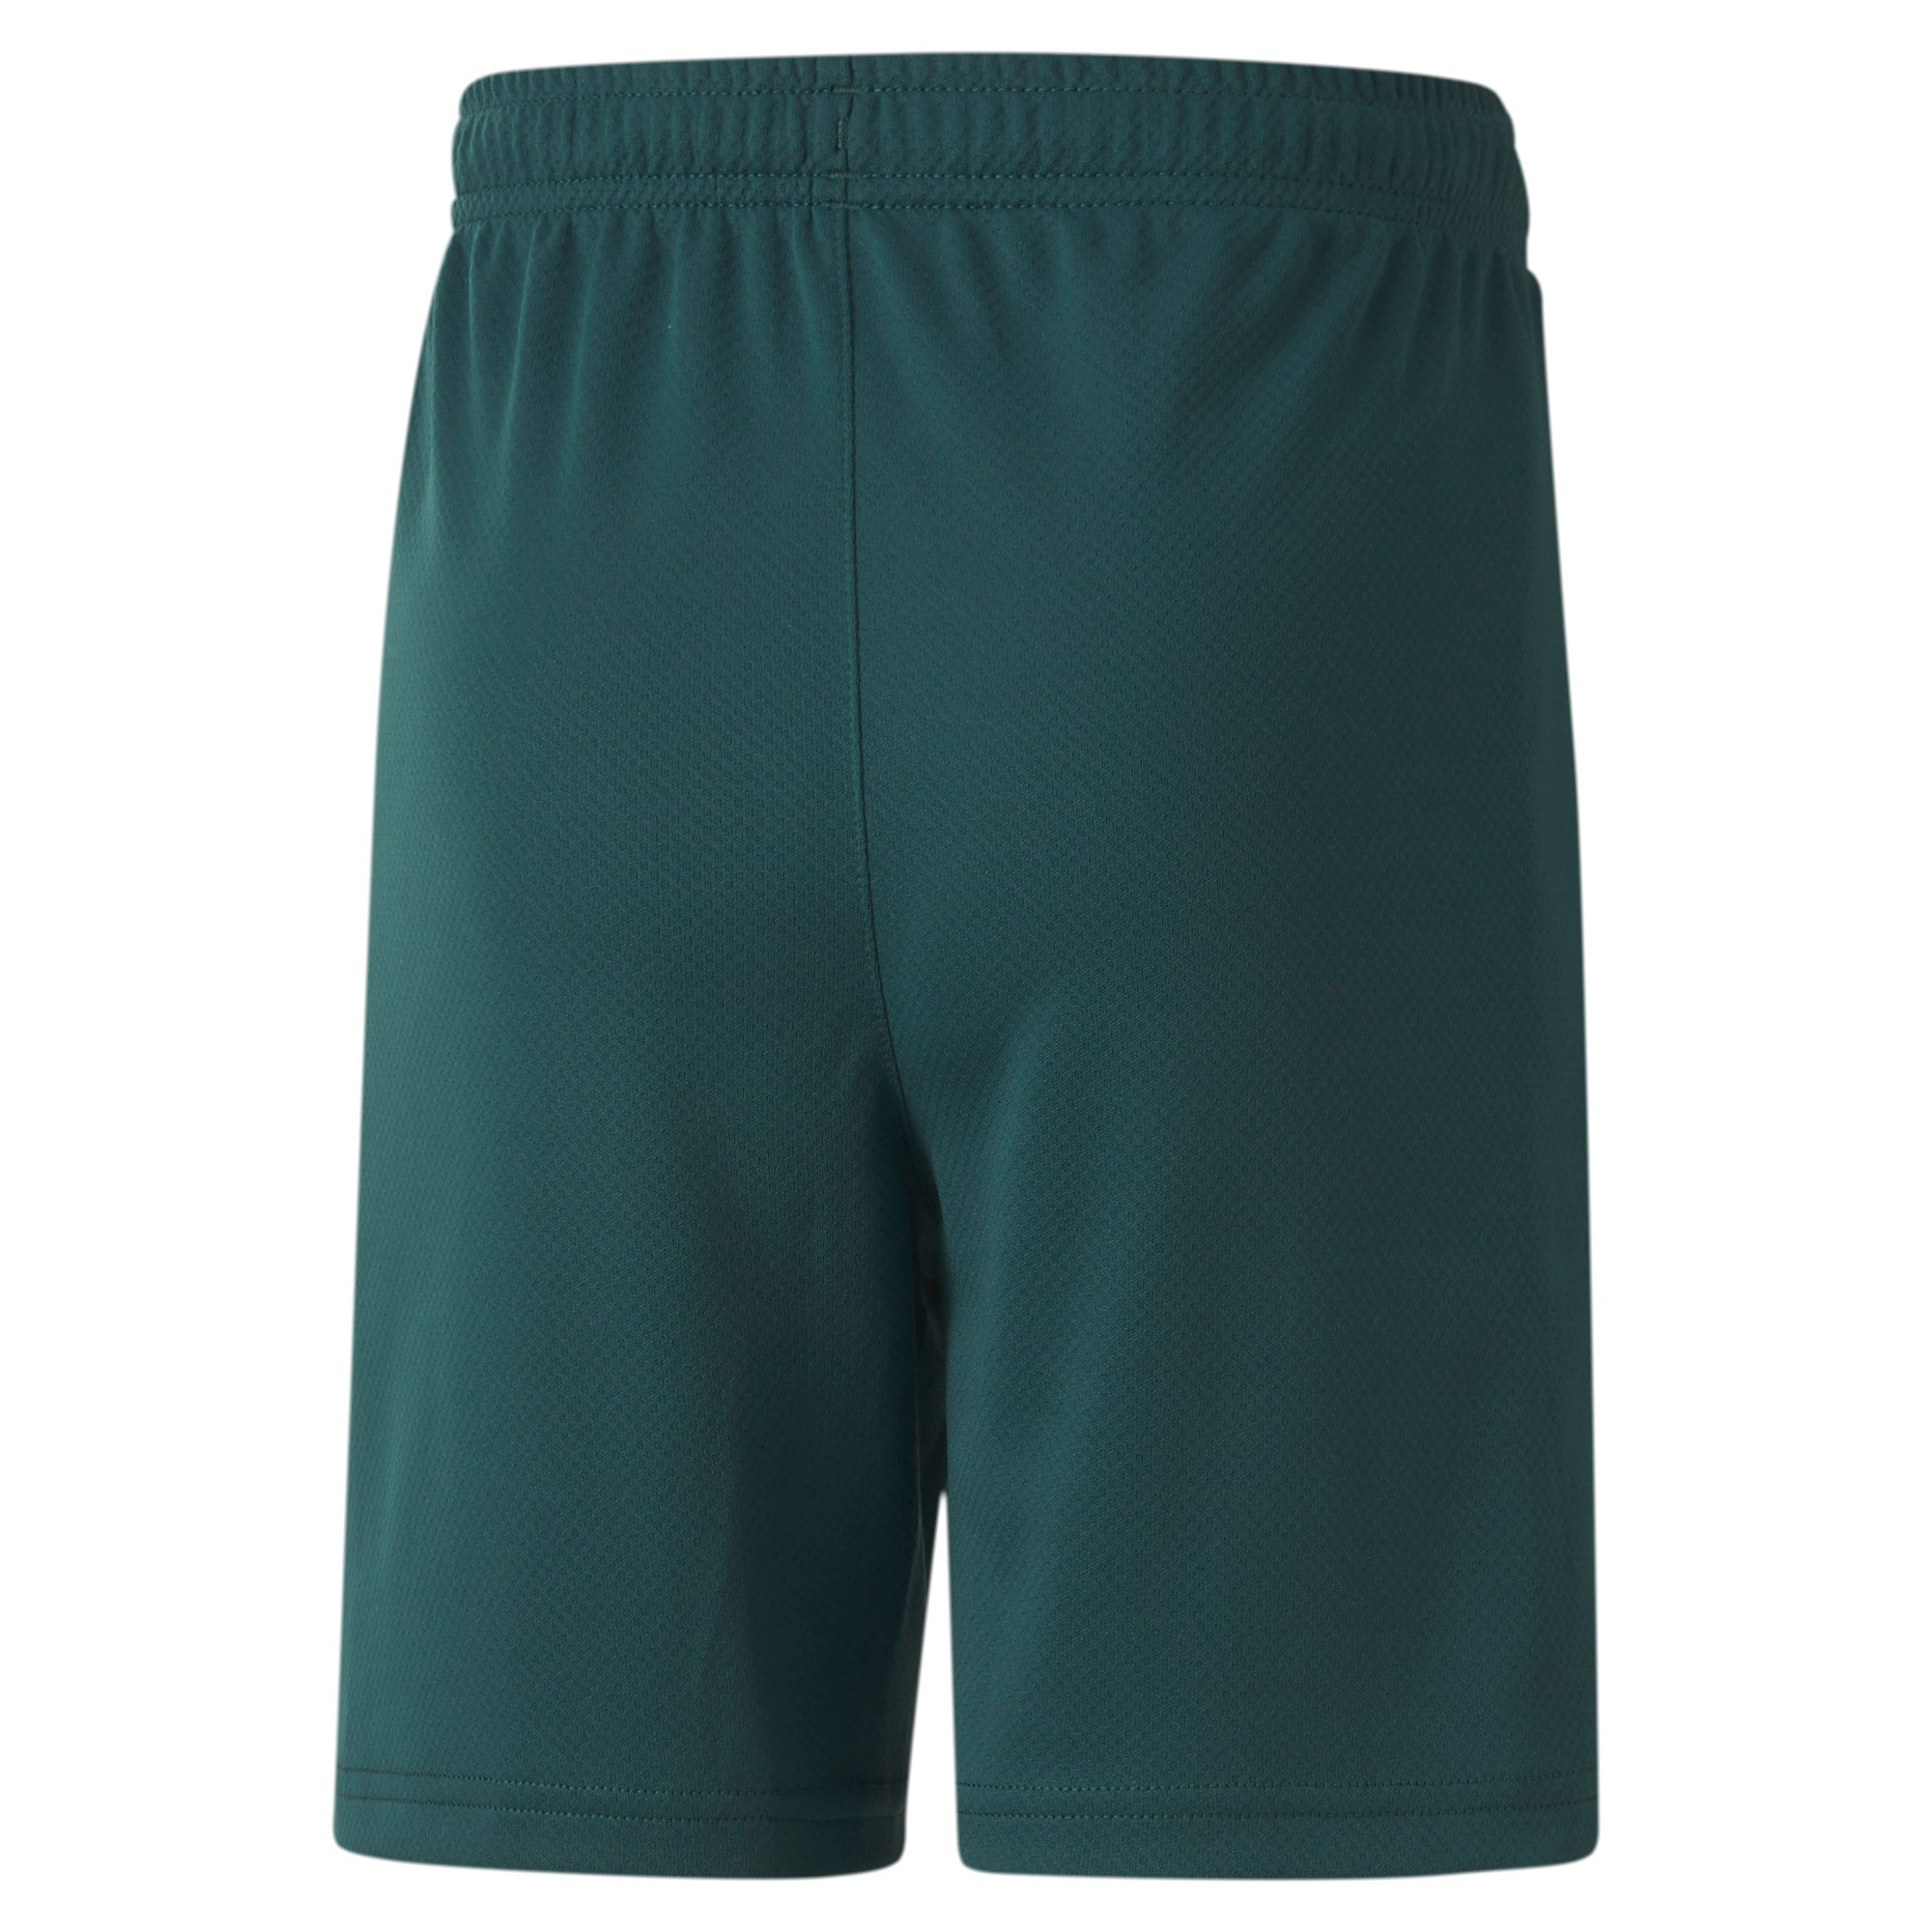 Thumbnail 2 of Italia Kids' Third Replica Shorts, Ponderosa Pine-Peacoat, medium